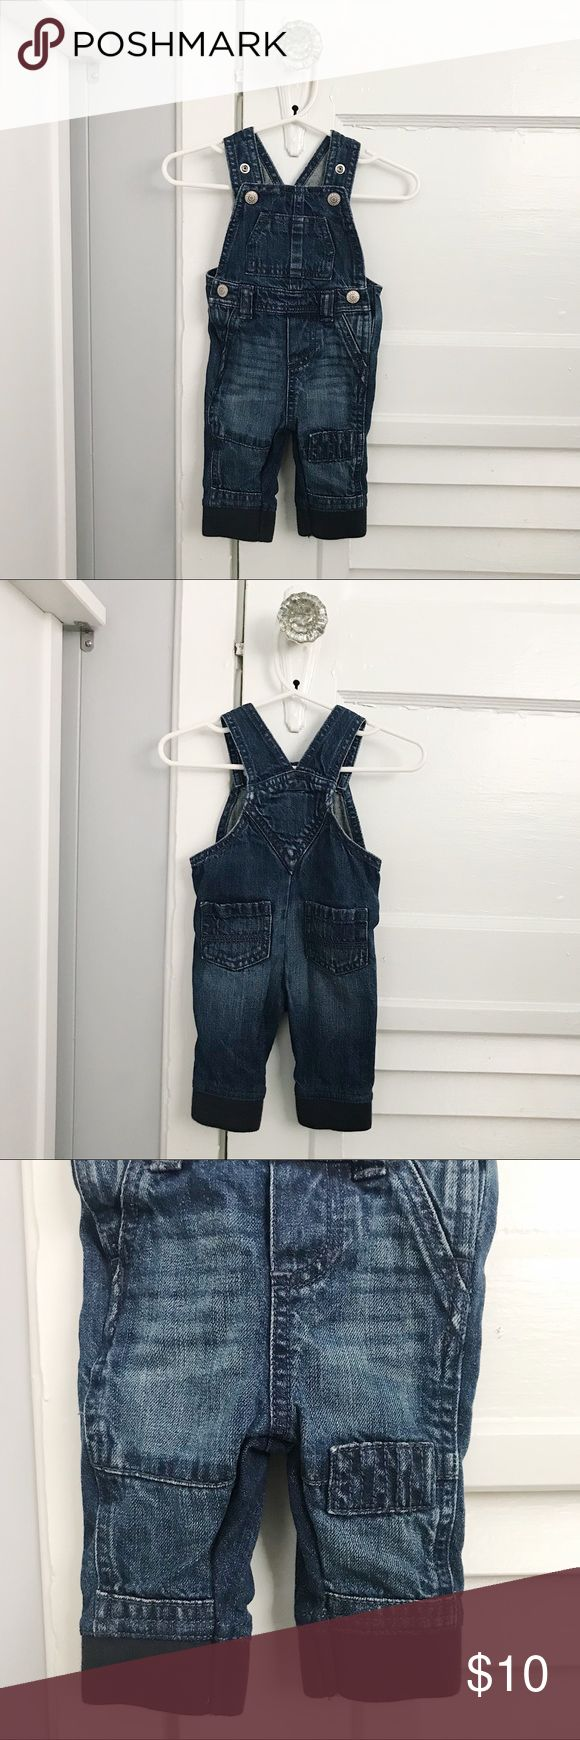 Old Navy Denim Overalls Old Navy Denim Overalls with fabric cuffs on the bottom. These are in EXCELLENT used condition, only worn twice. Old Navy Bottoms Overalls